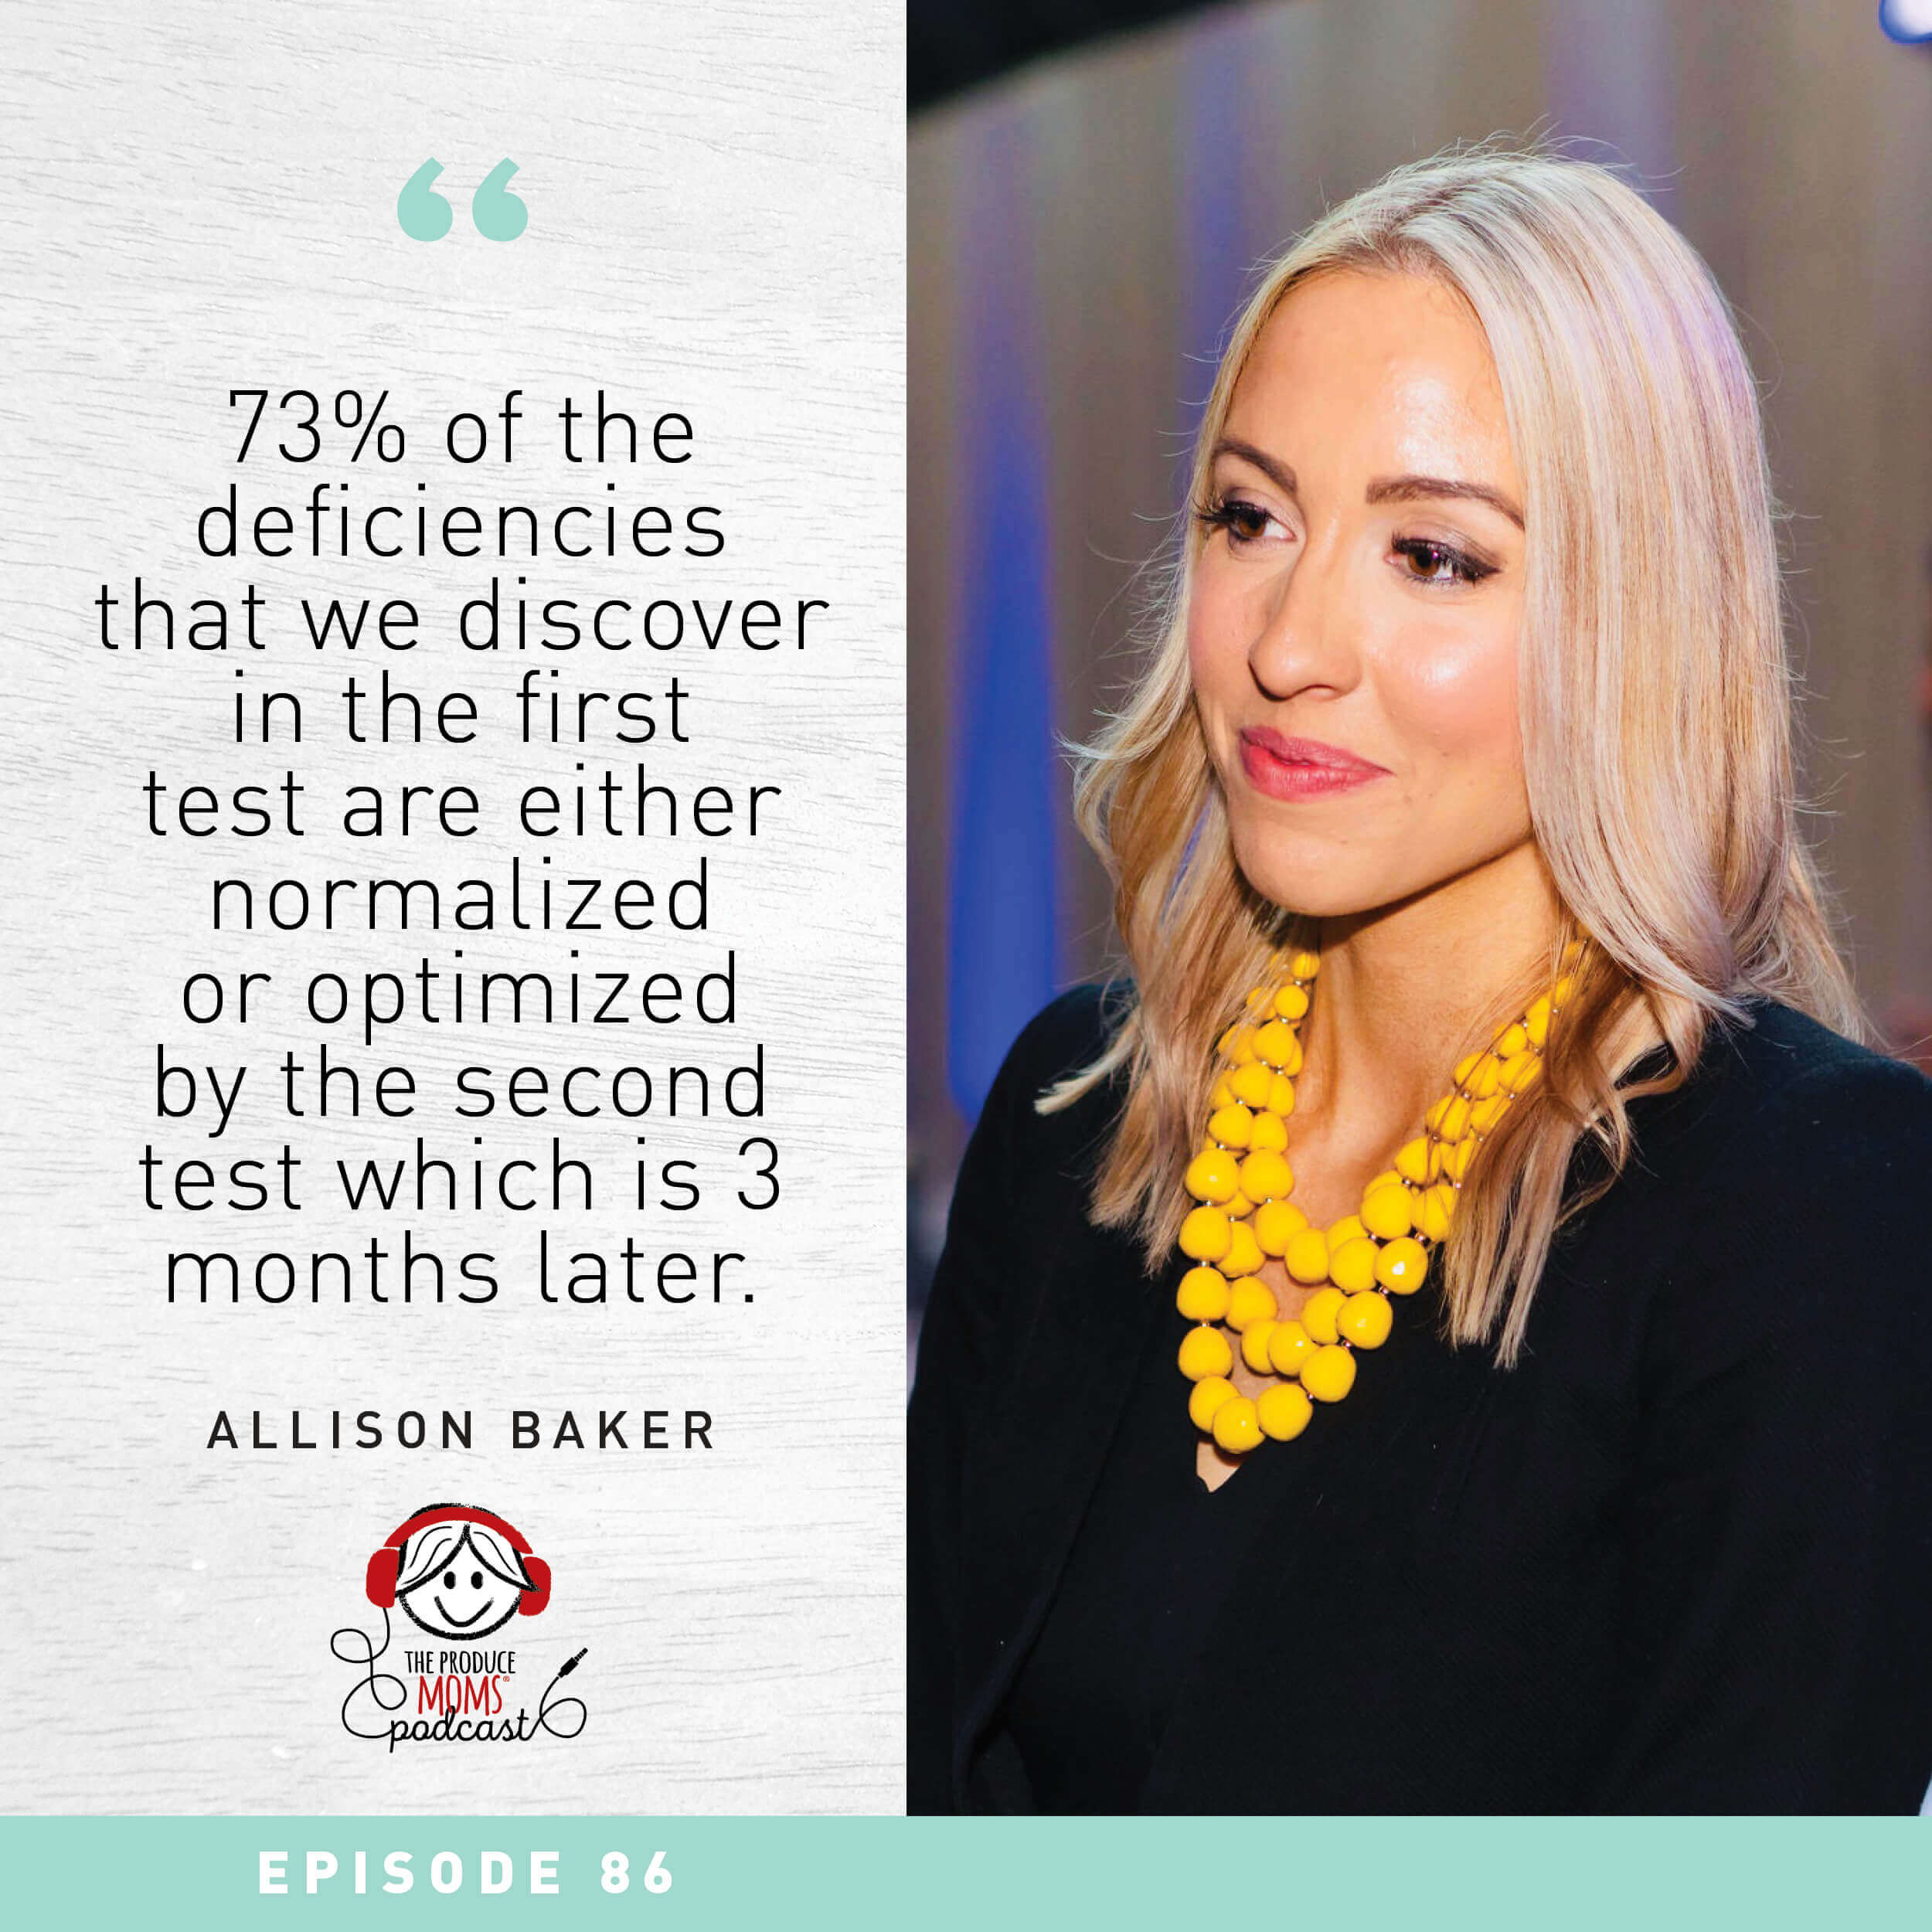 Episode 86: The Future of Nutrition is Personalized with Allison Baker, VP of Business Development at Baze